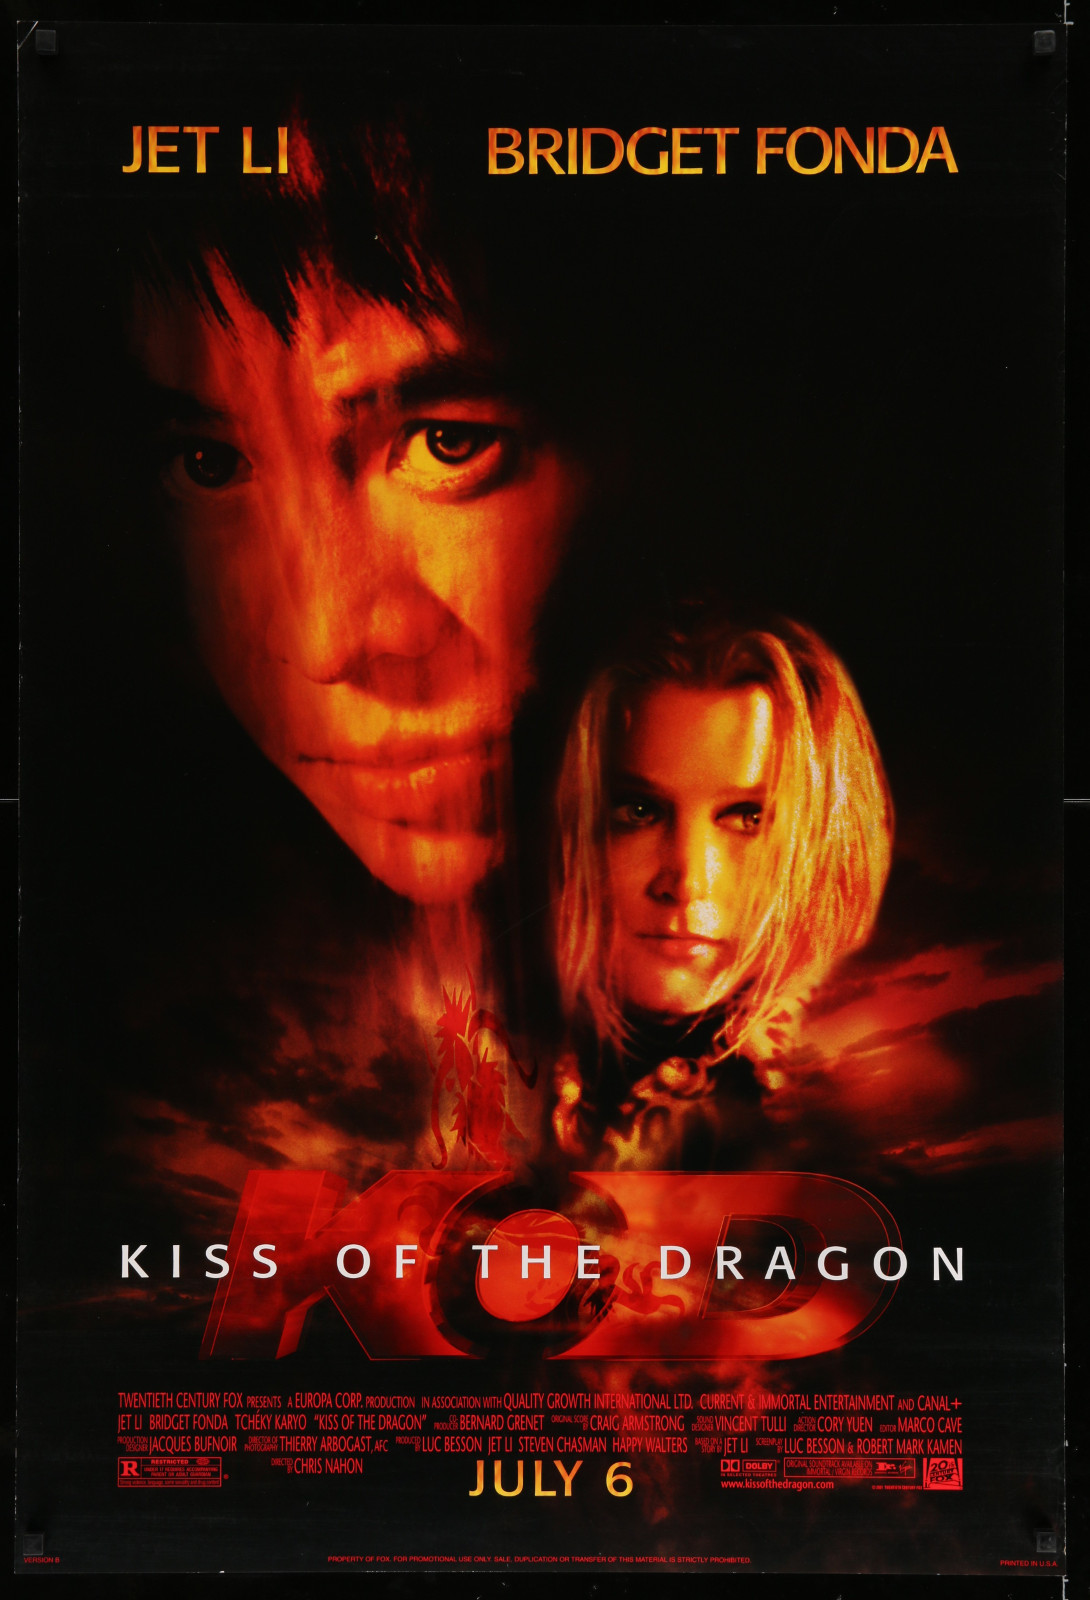 Kiss Of The Dragon 2A446 A Part Of A Lot 17 Unfolded Mostly Double-Sided 27X40 One-Sheets '90S-00S Great Movie Images!